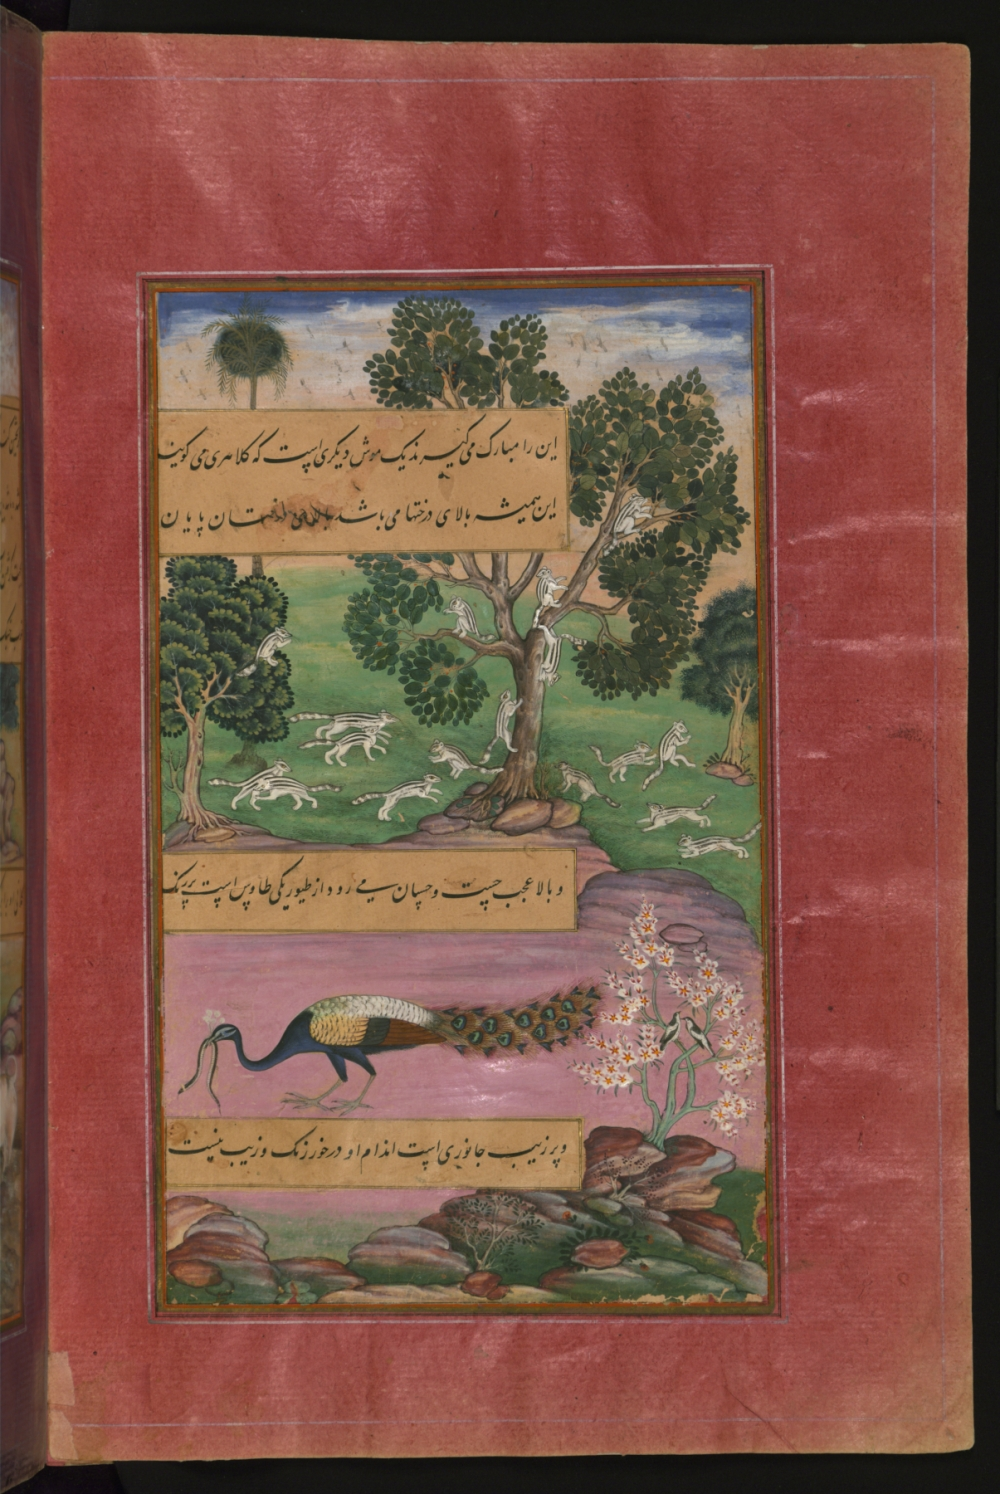 Animals and Birds of Hindustan - Squirrels and Peacock, from the Baburnama (Book of Babur), Photo: The Walters Art Museum